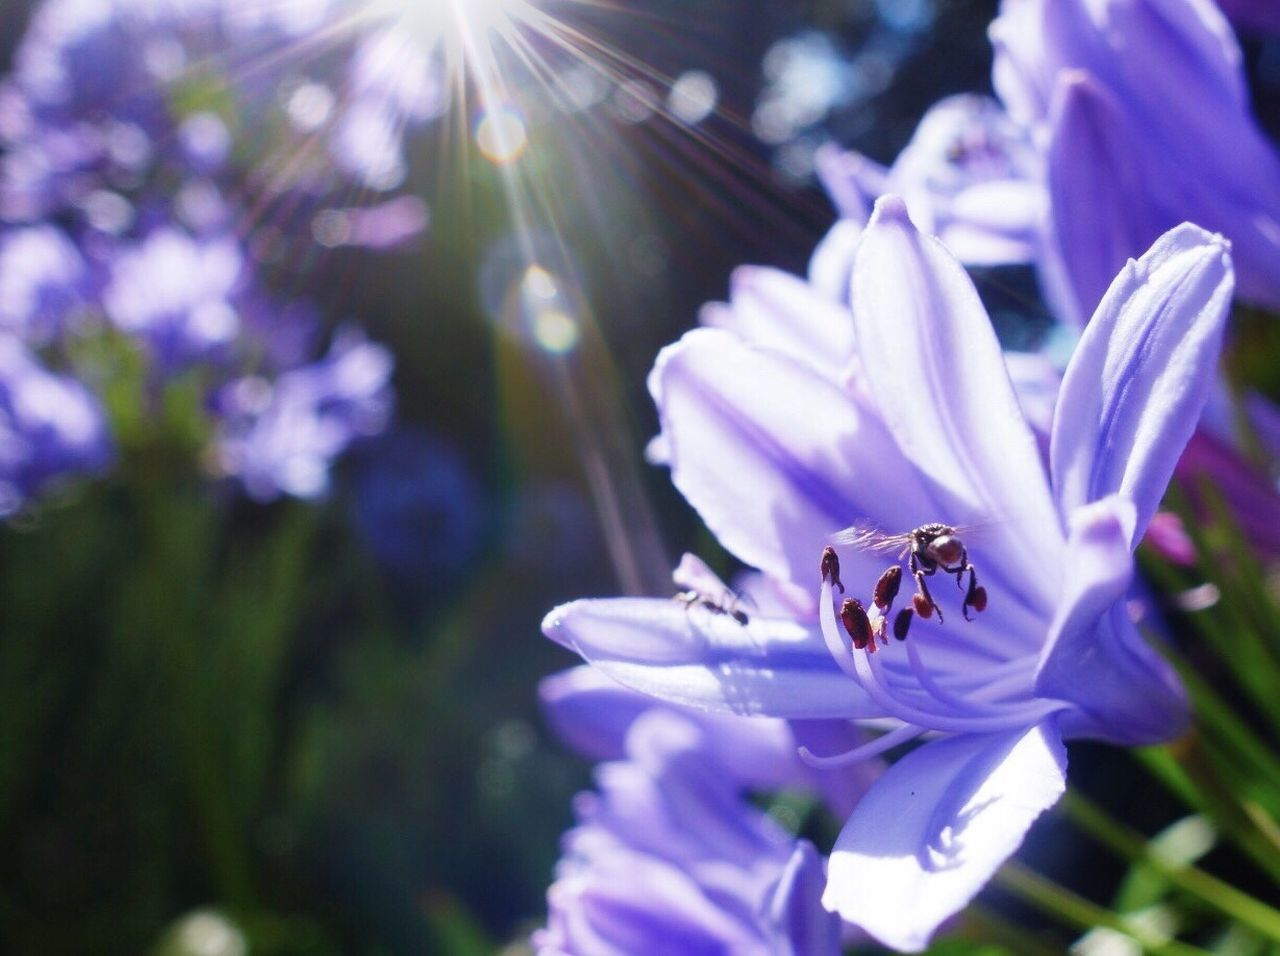 Flower Bee Nature Native Bee Flight Insect Pollen Stamen Garden Agapanthus Flowers Purple Beauty In Nature Growth Plant Spring Summer Flower Head Symbiotic Relationship